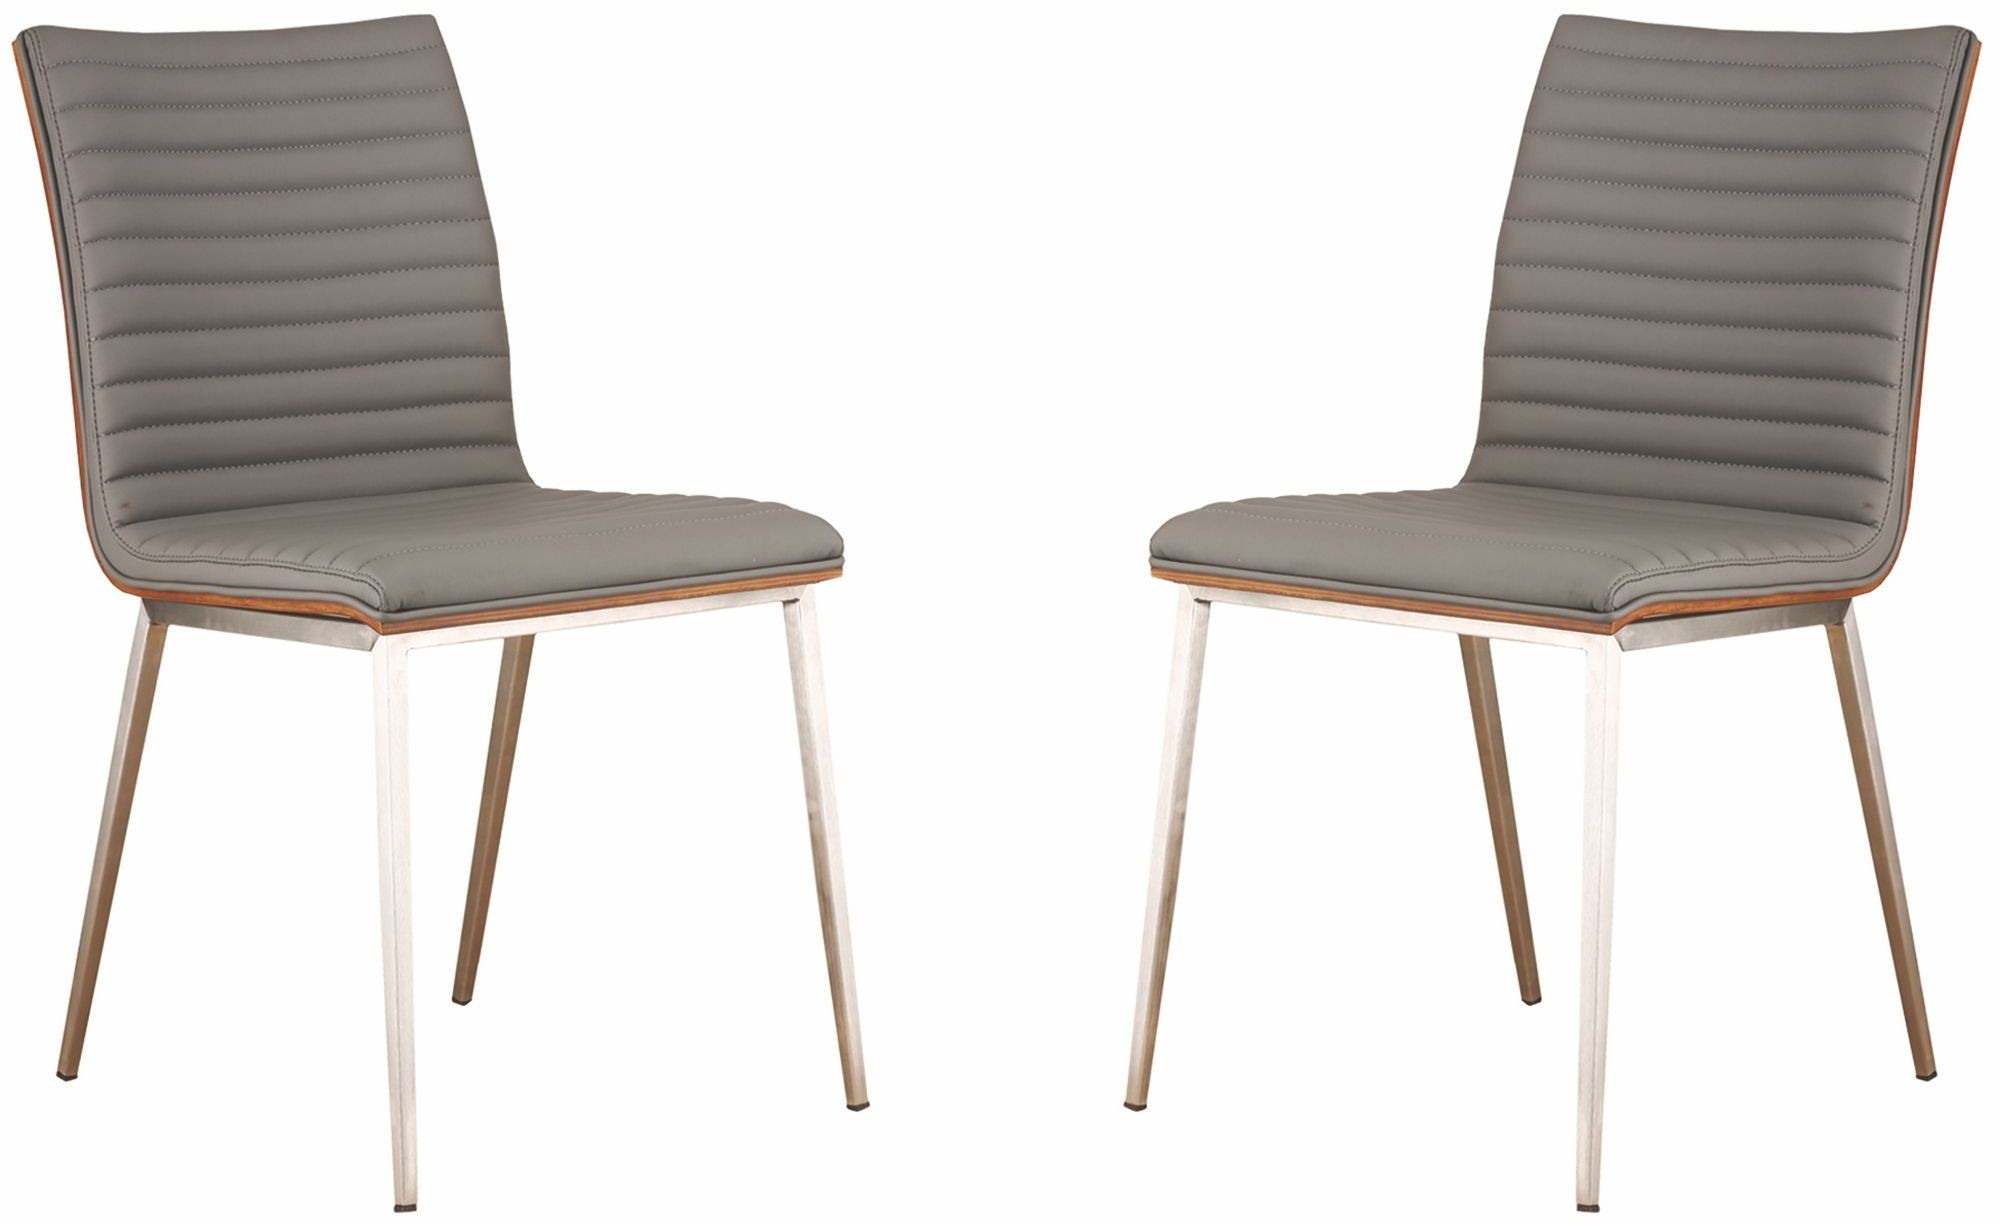 Steel Dining Chairs ~ Cafe brushed stainless steel gray dining chair set of